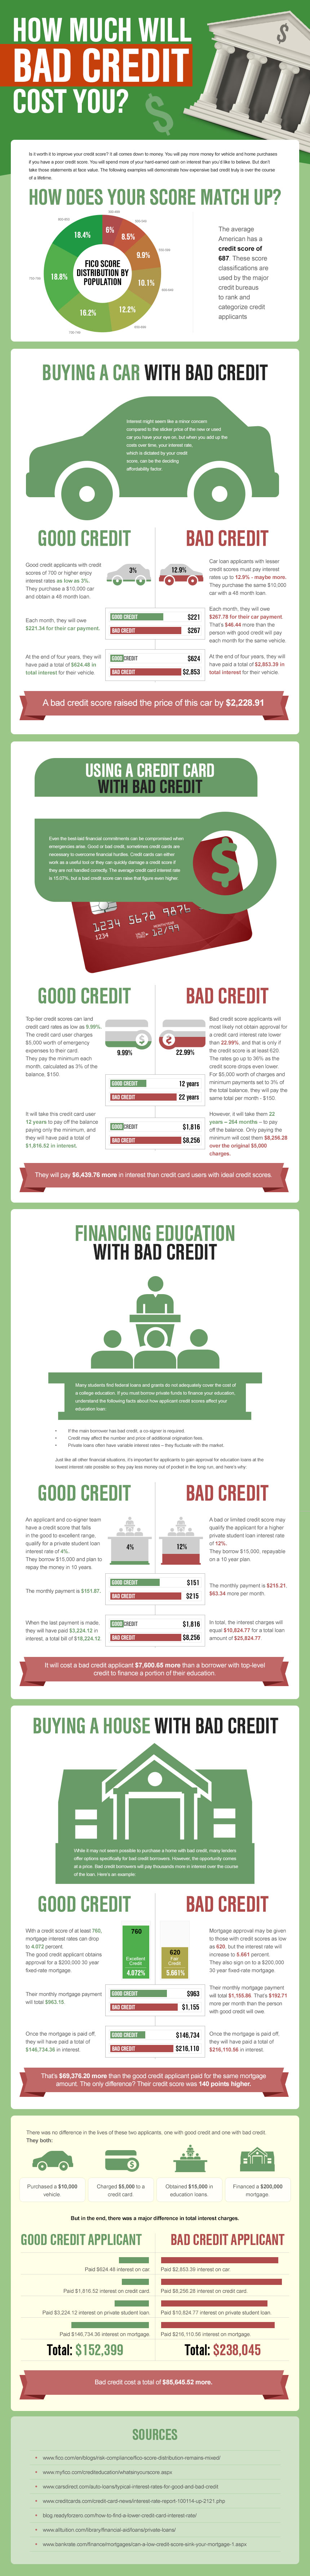 Cost of Bad Credit Infographic